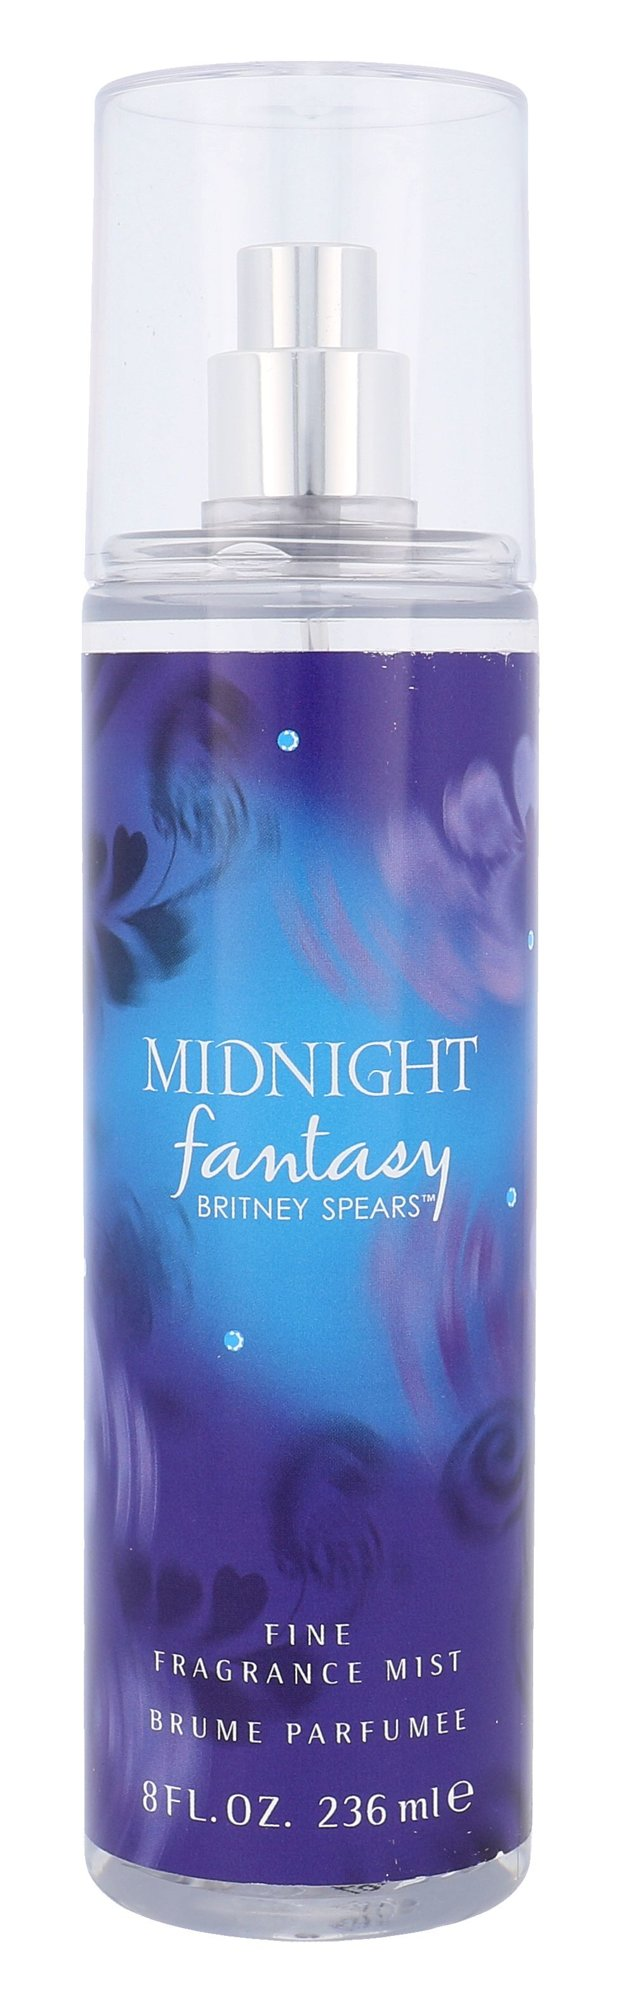 Britney Spears Fantasy Midnight Nourishing body spray 236ml